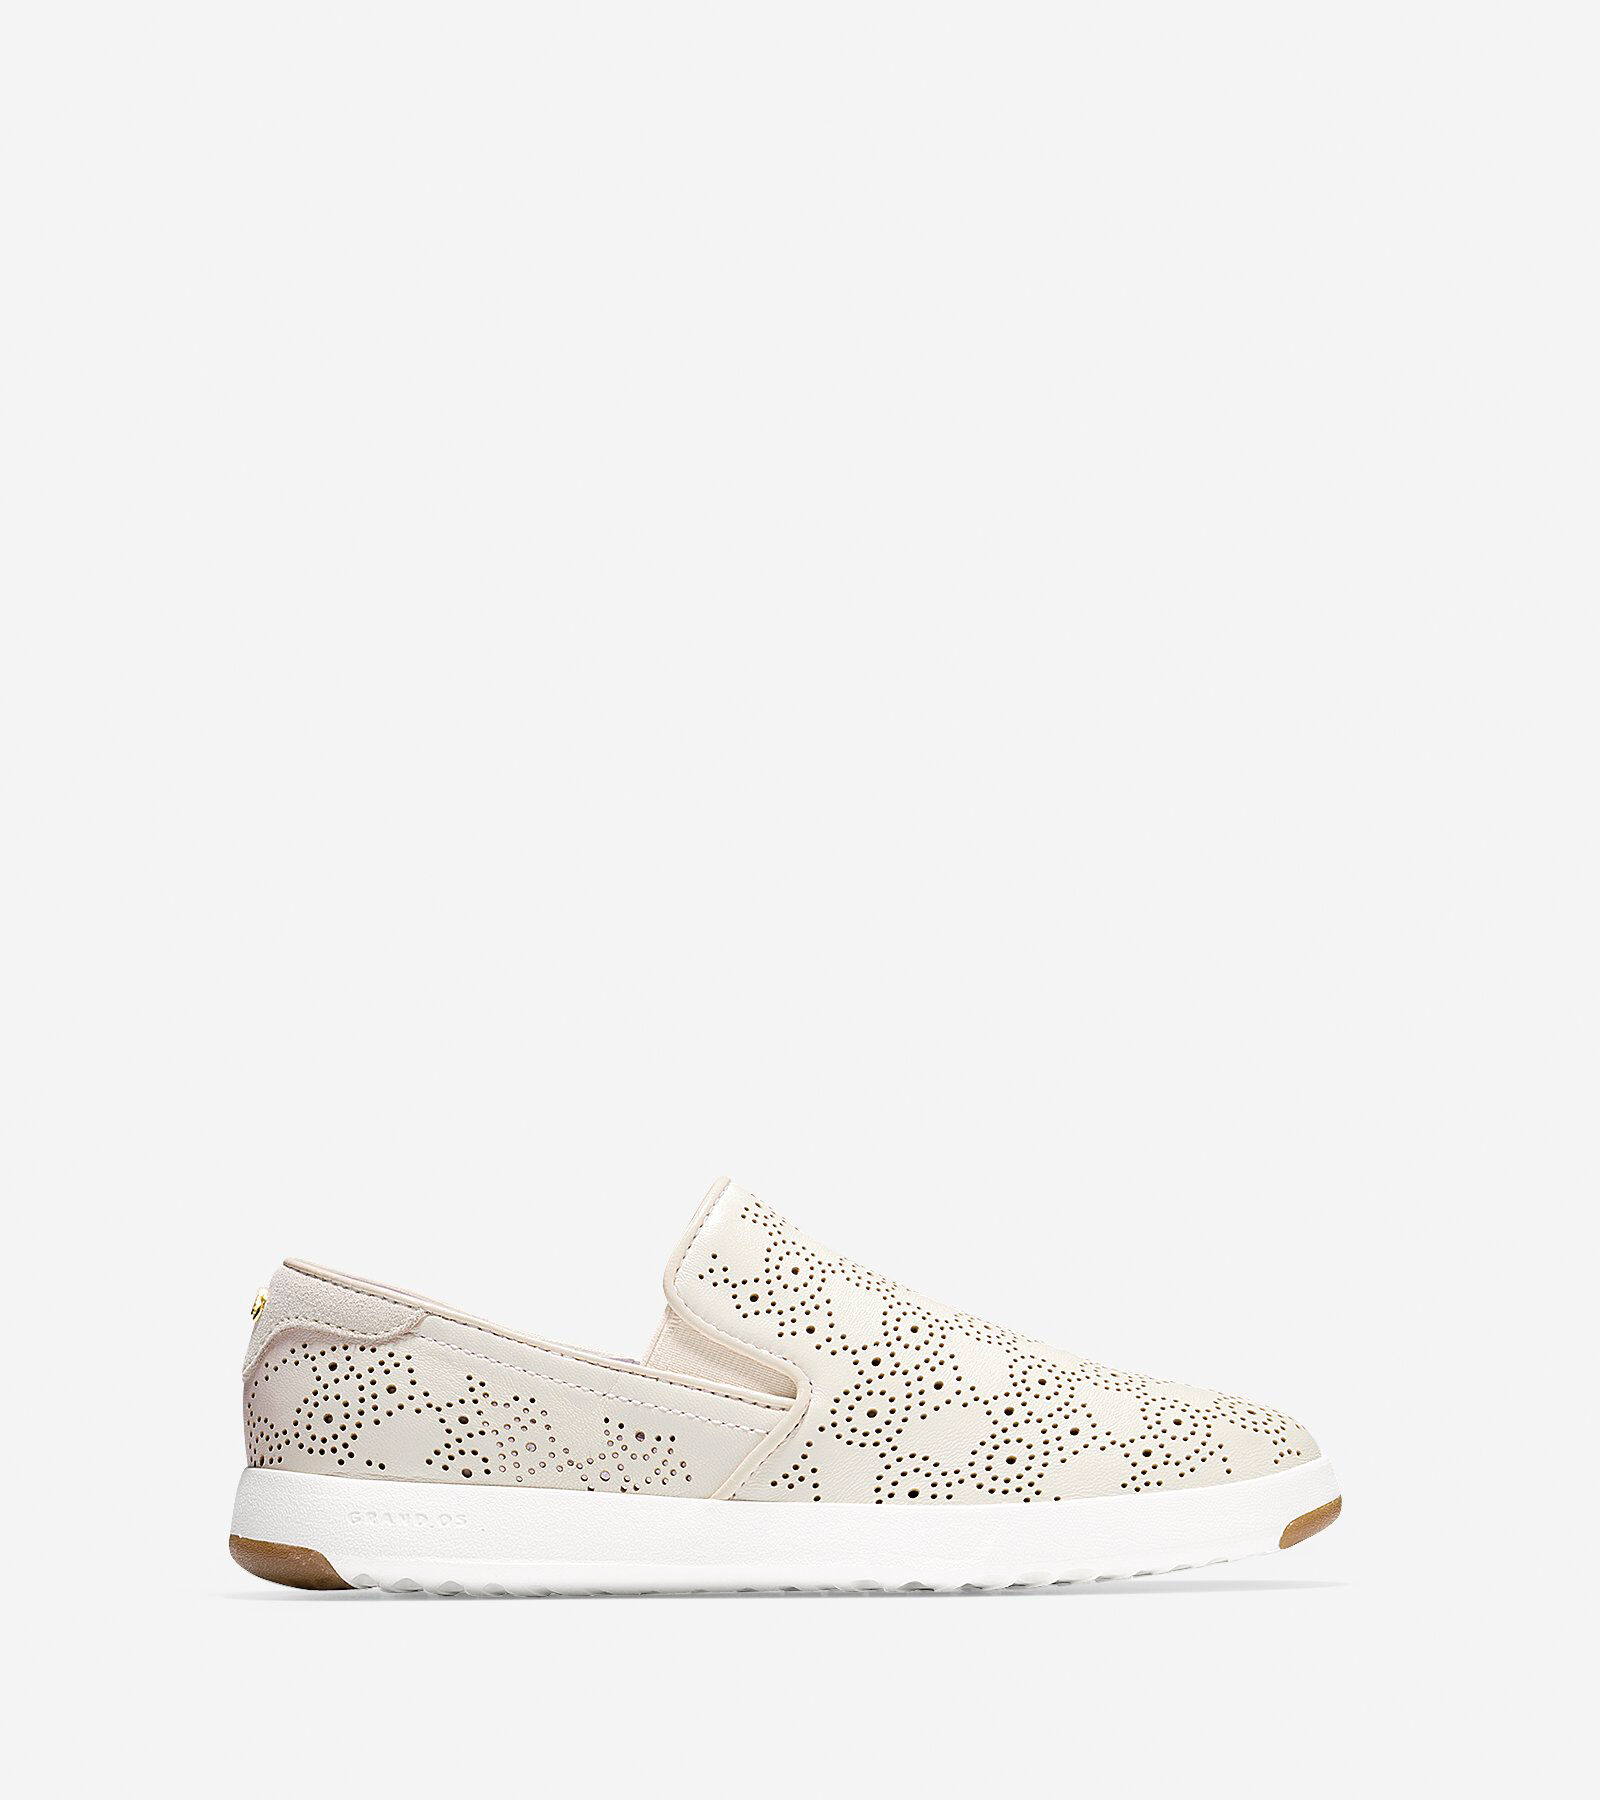 Cole Haan GrandPro Paisley Perforated Slip-On Sneaker lE7Fmv7Y2G